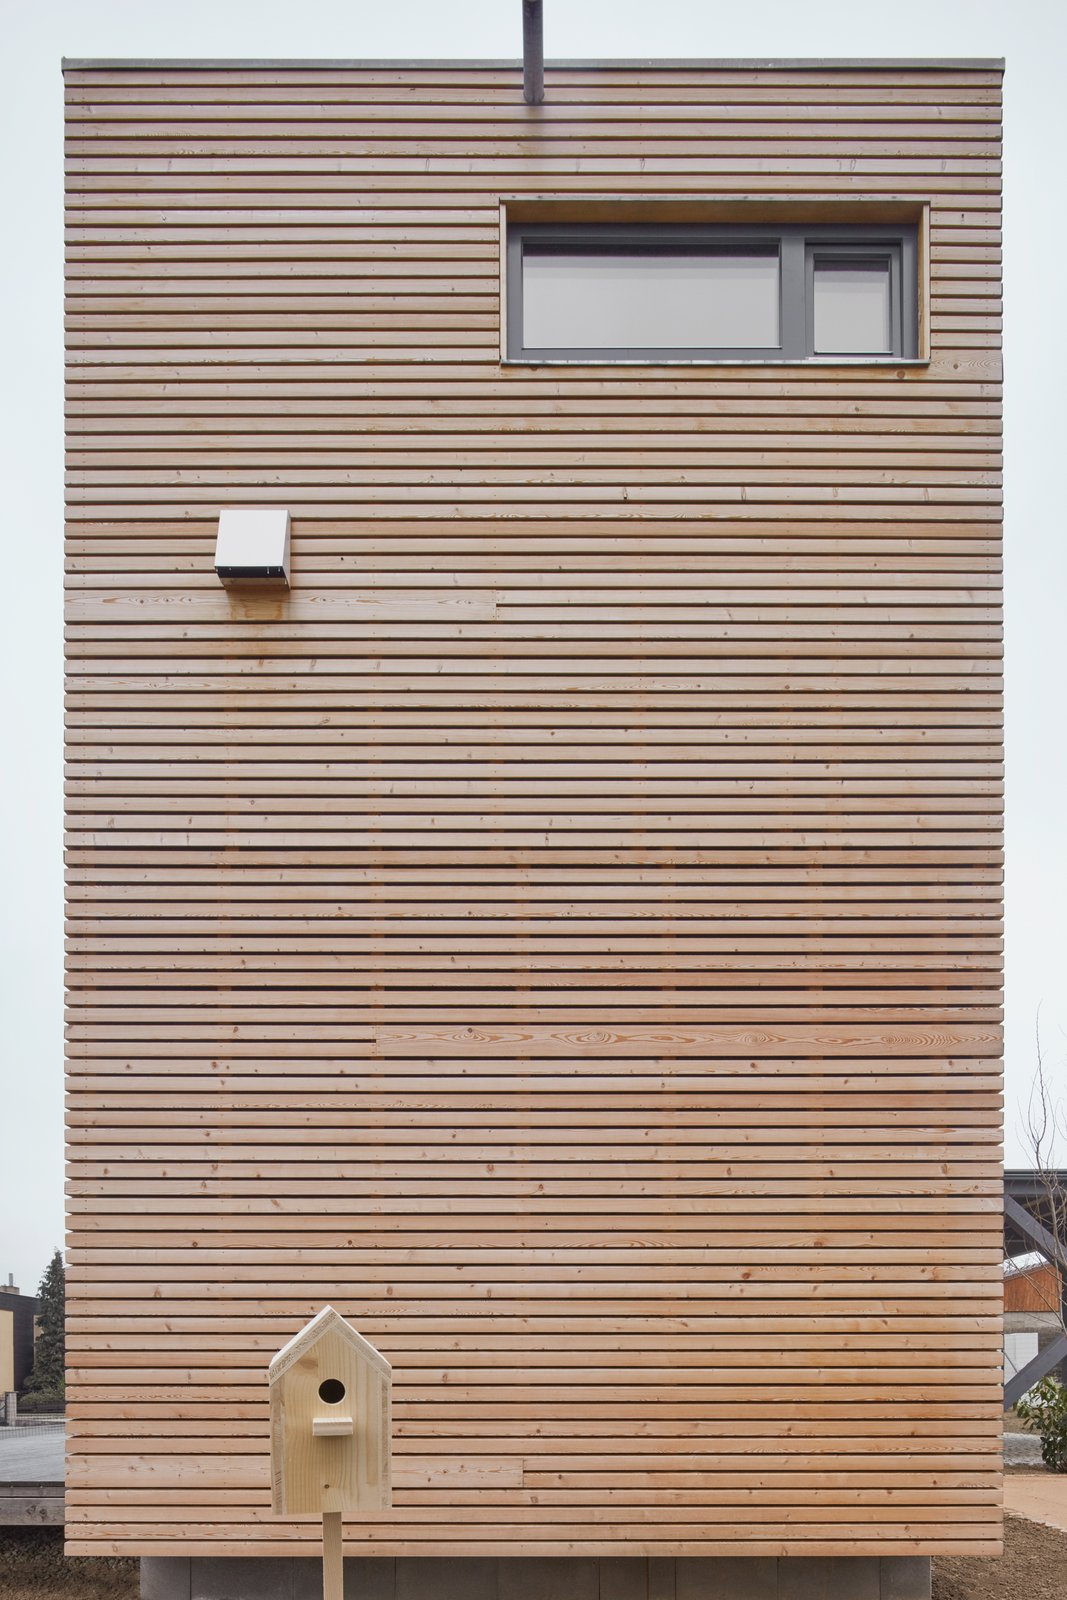 Exterior, Wood Siding Material, House Building Type, Glass Siding Material, and Flat RoofLine  Freedomek No.061 by BoysPlayNice Photography & Concept